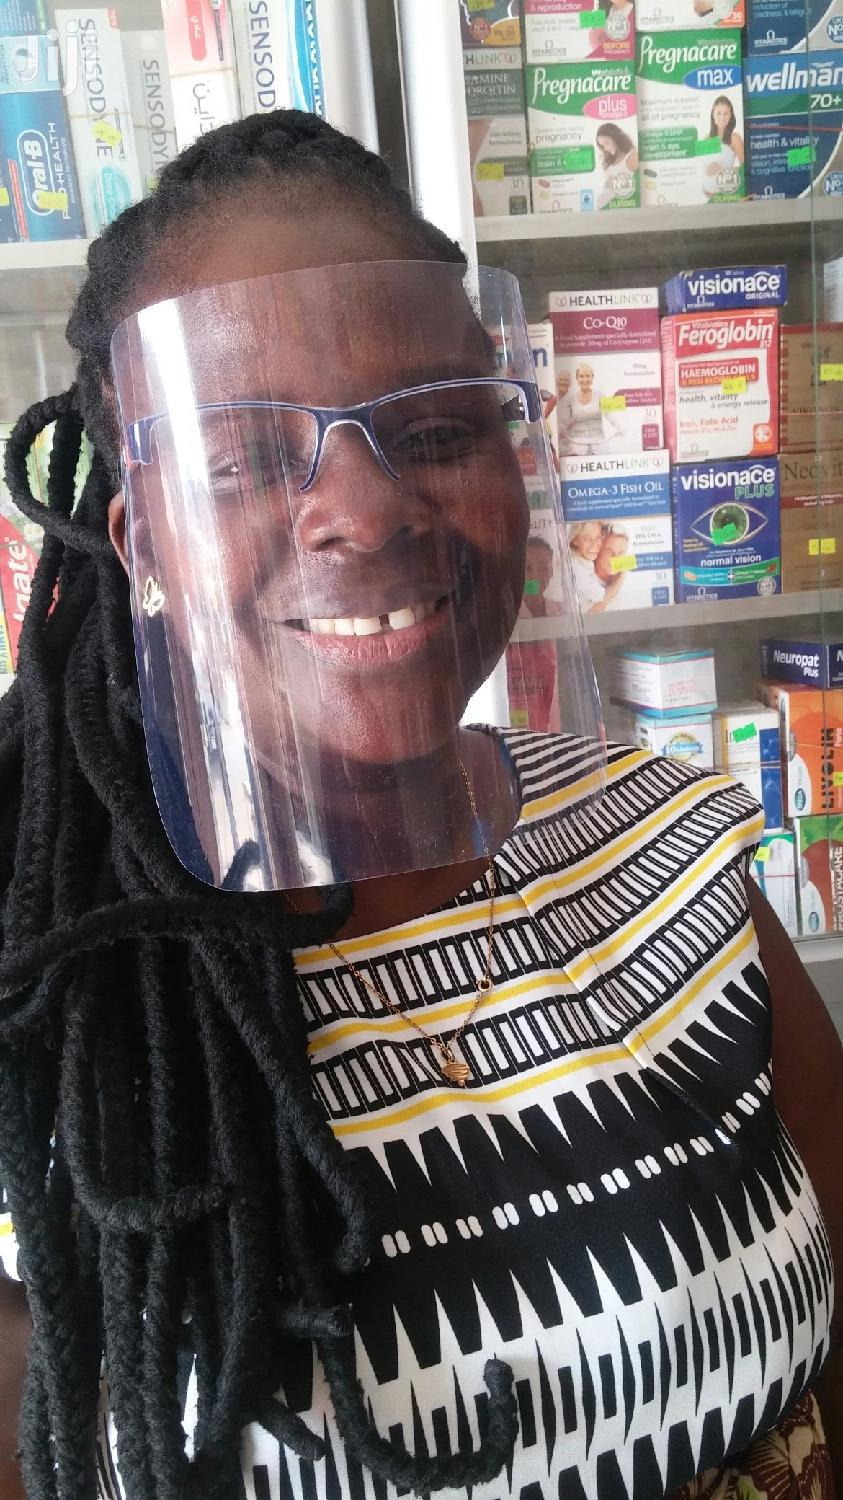 Spectacle Face Shield With Nose Mask